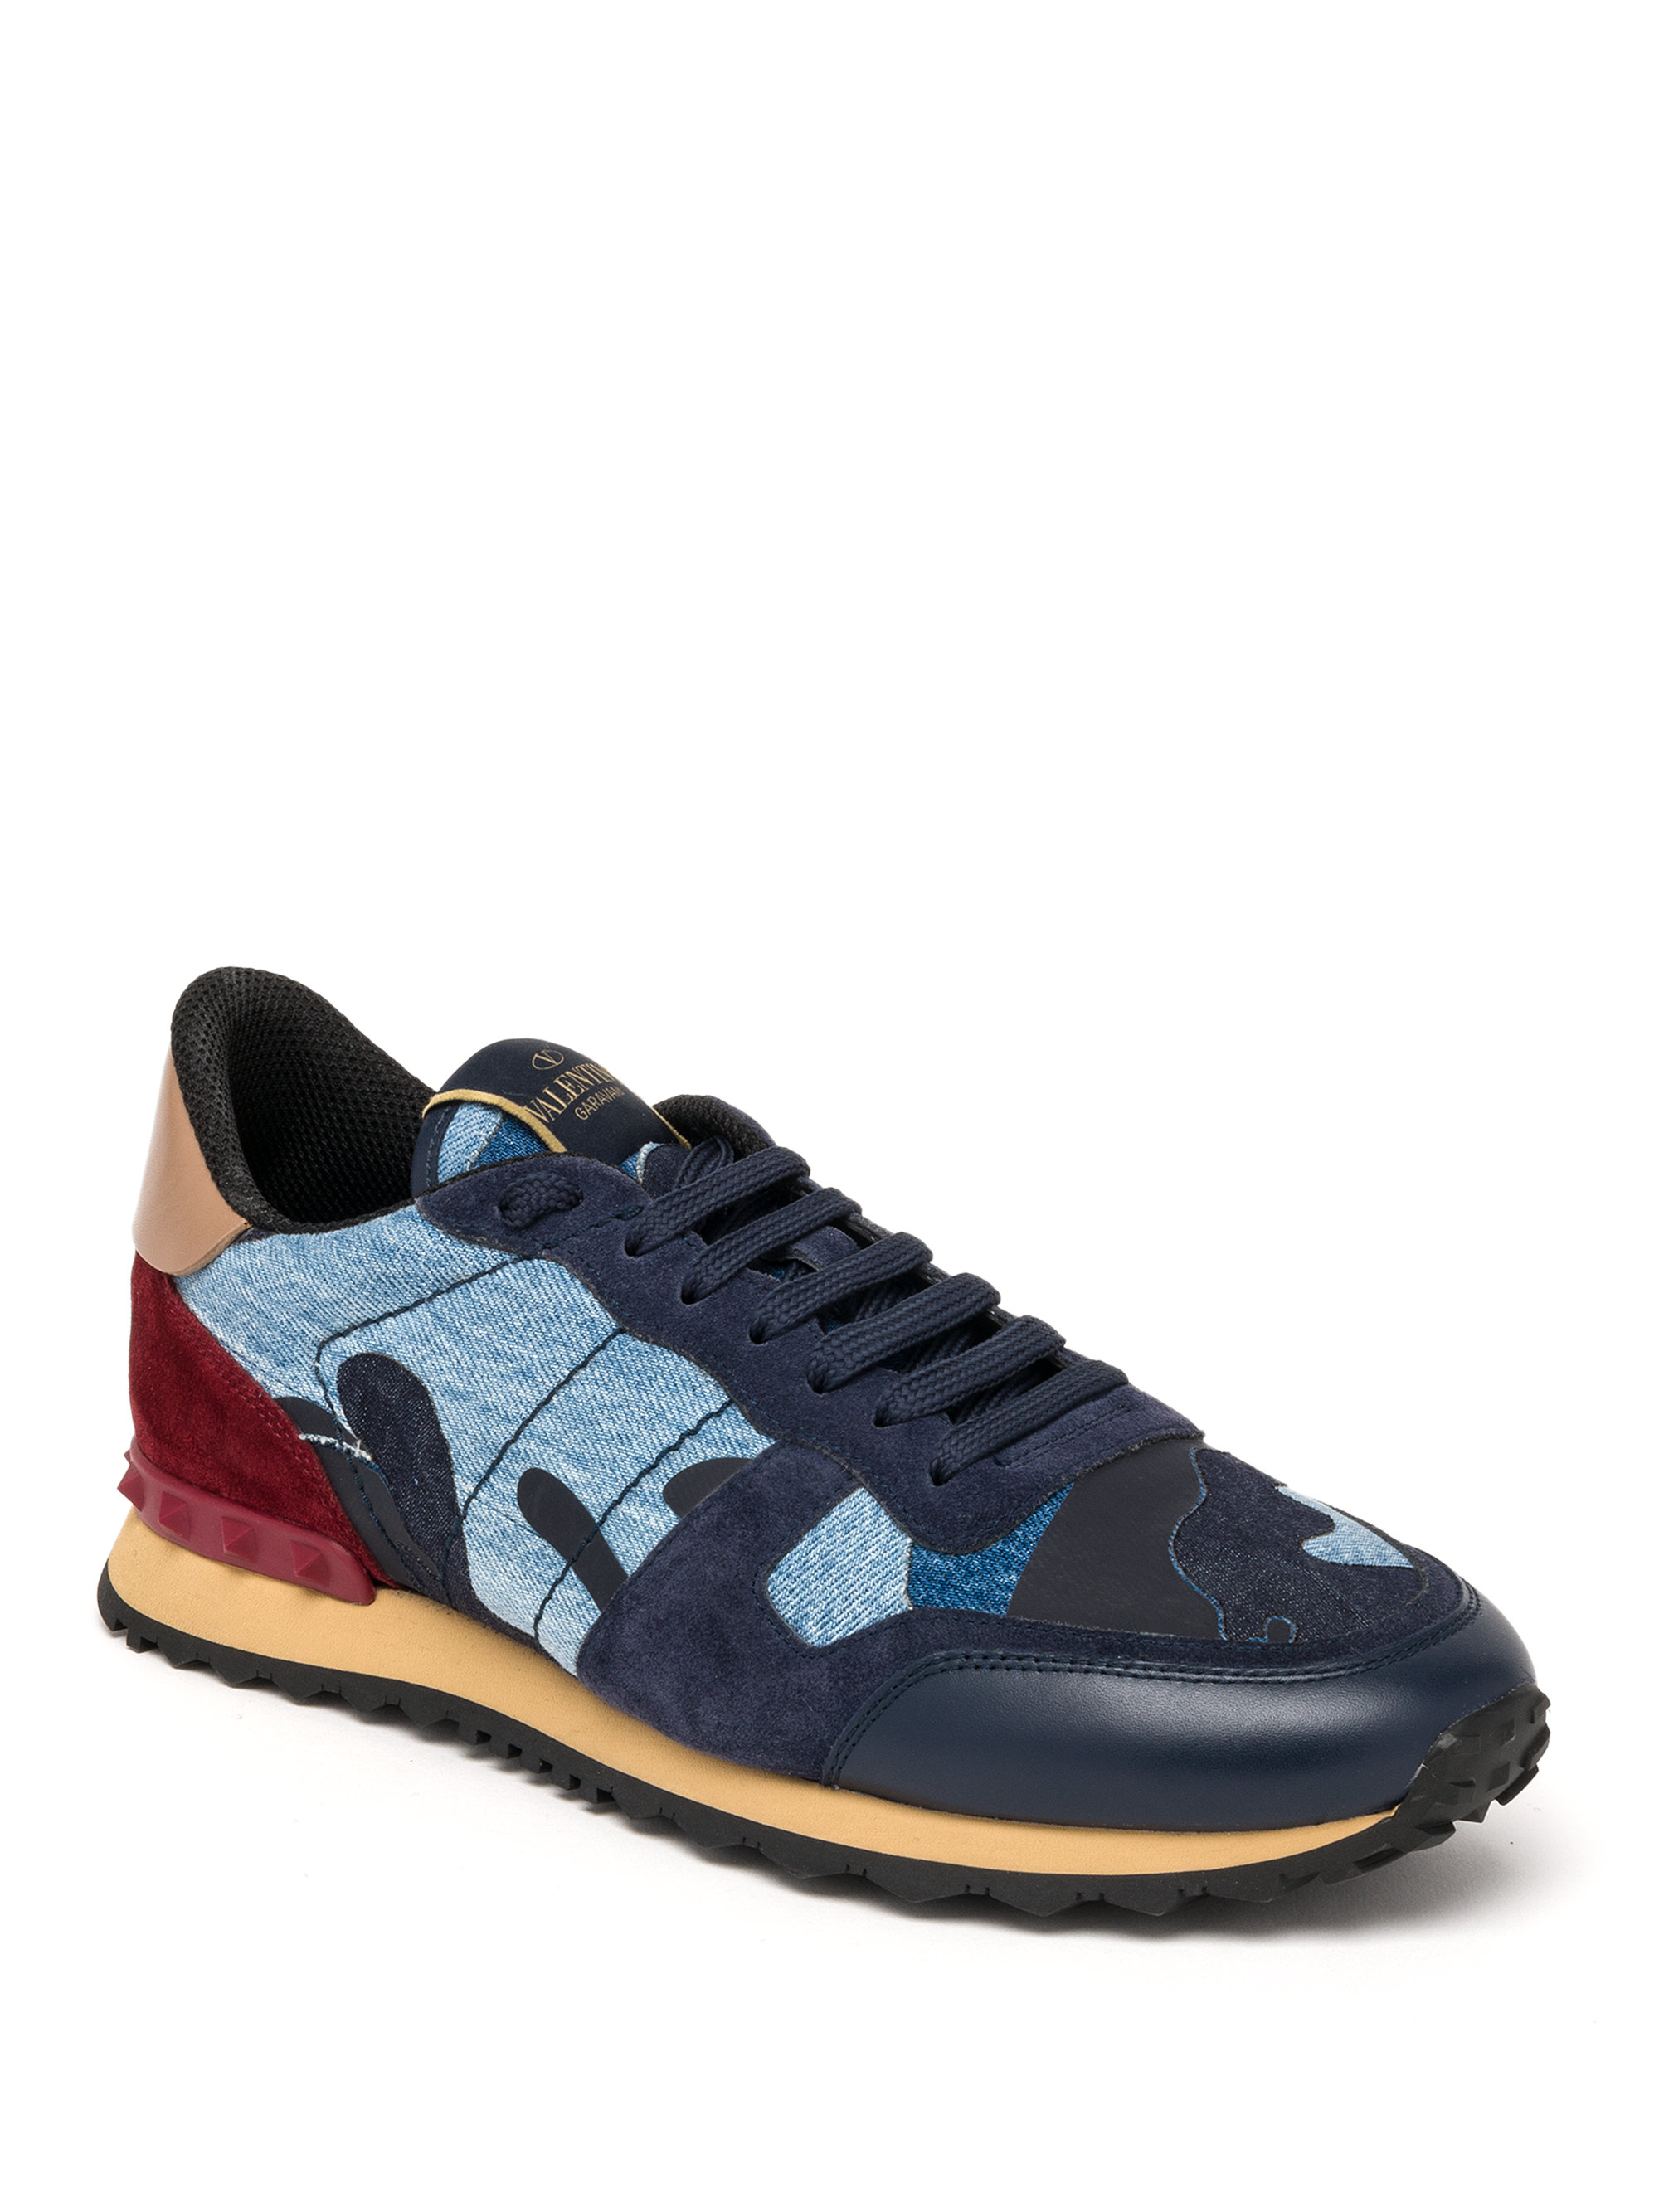 valentino rockrunner denim camo studded sneakers in blue lyst. Black Bedroom Furniture Sets. Home Design Ideas